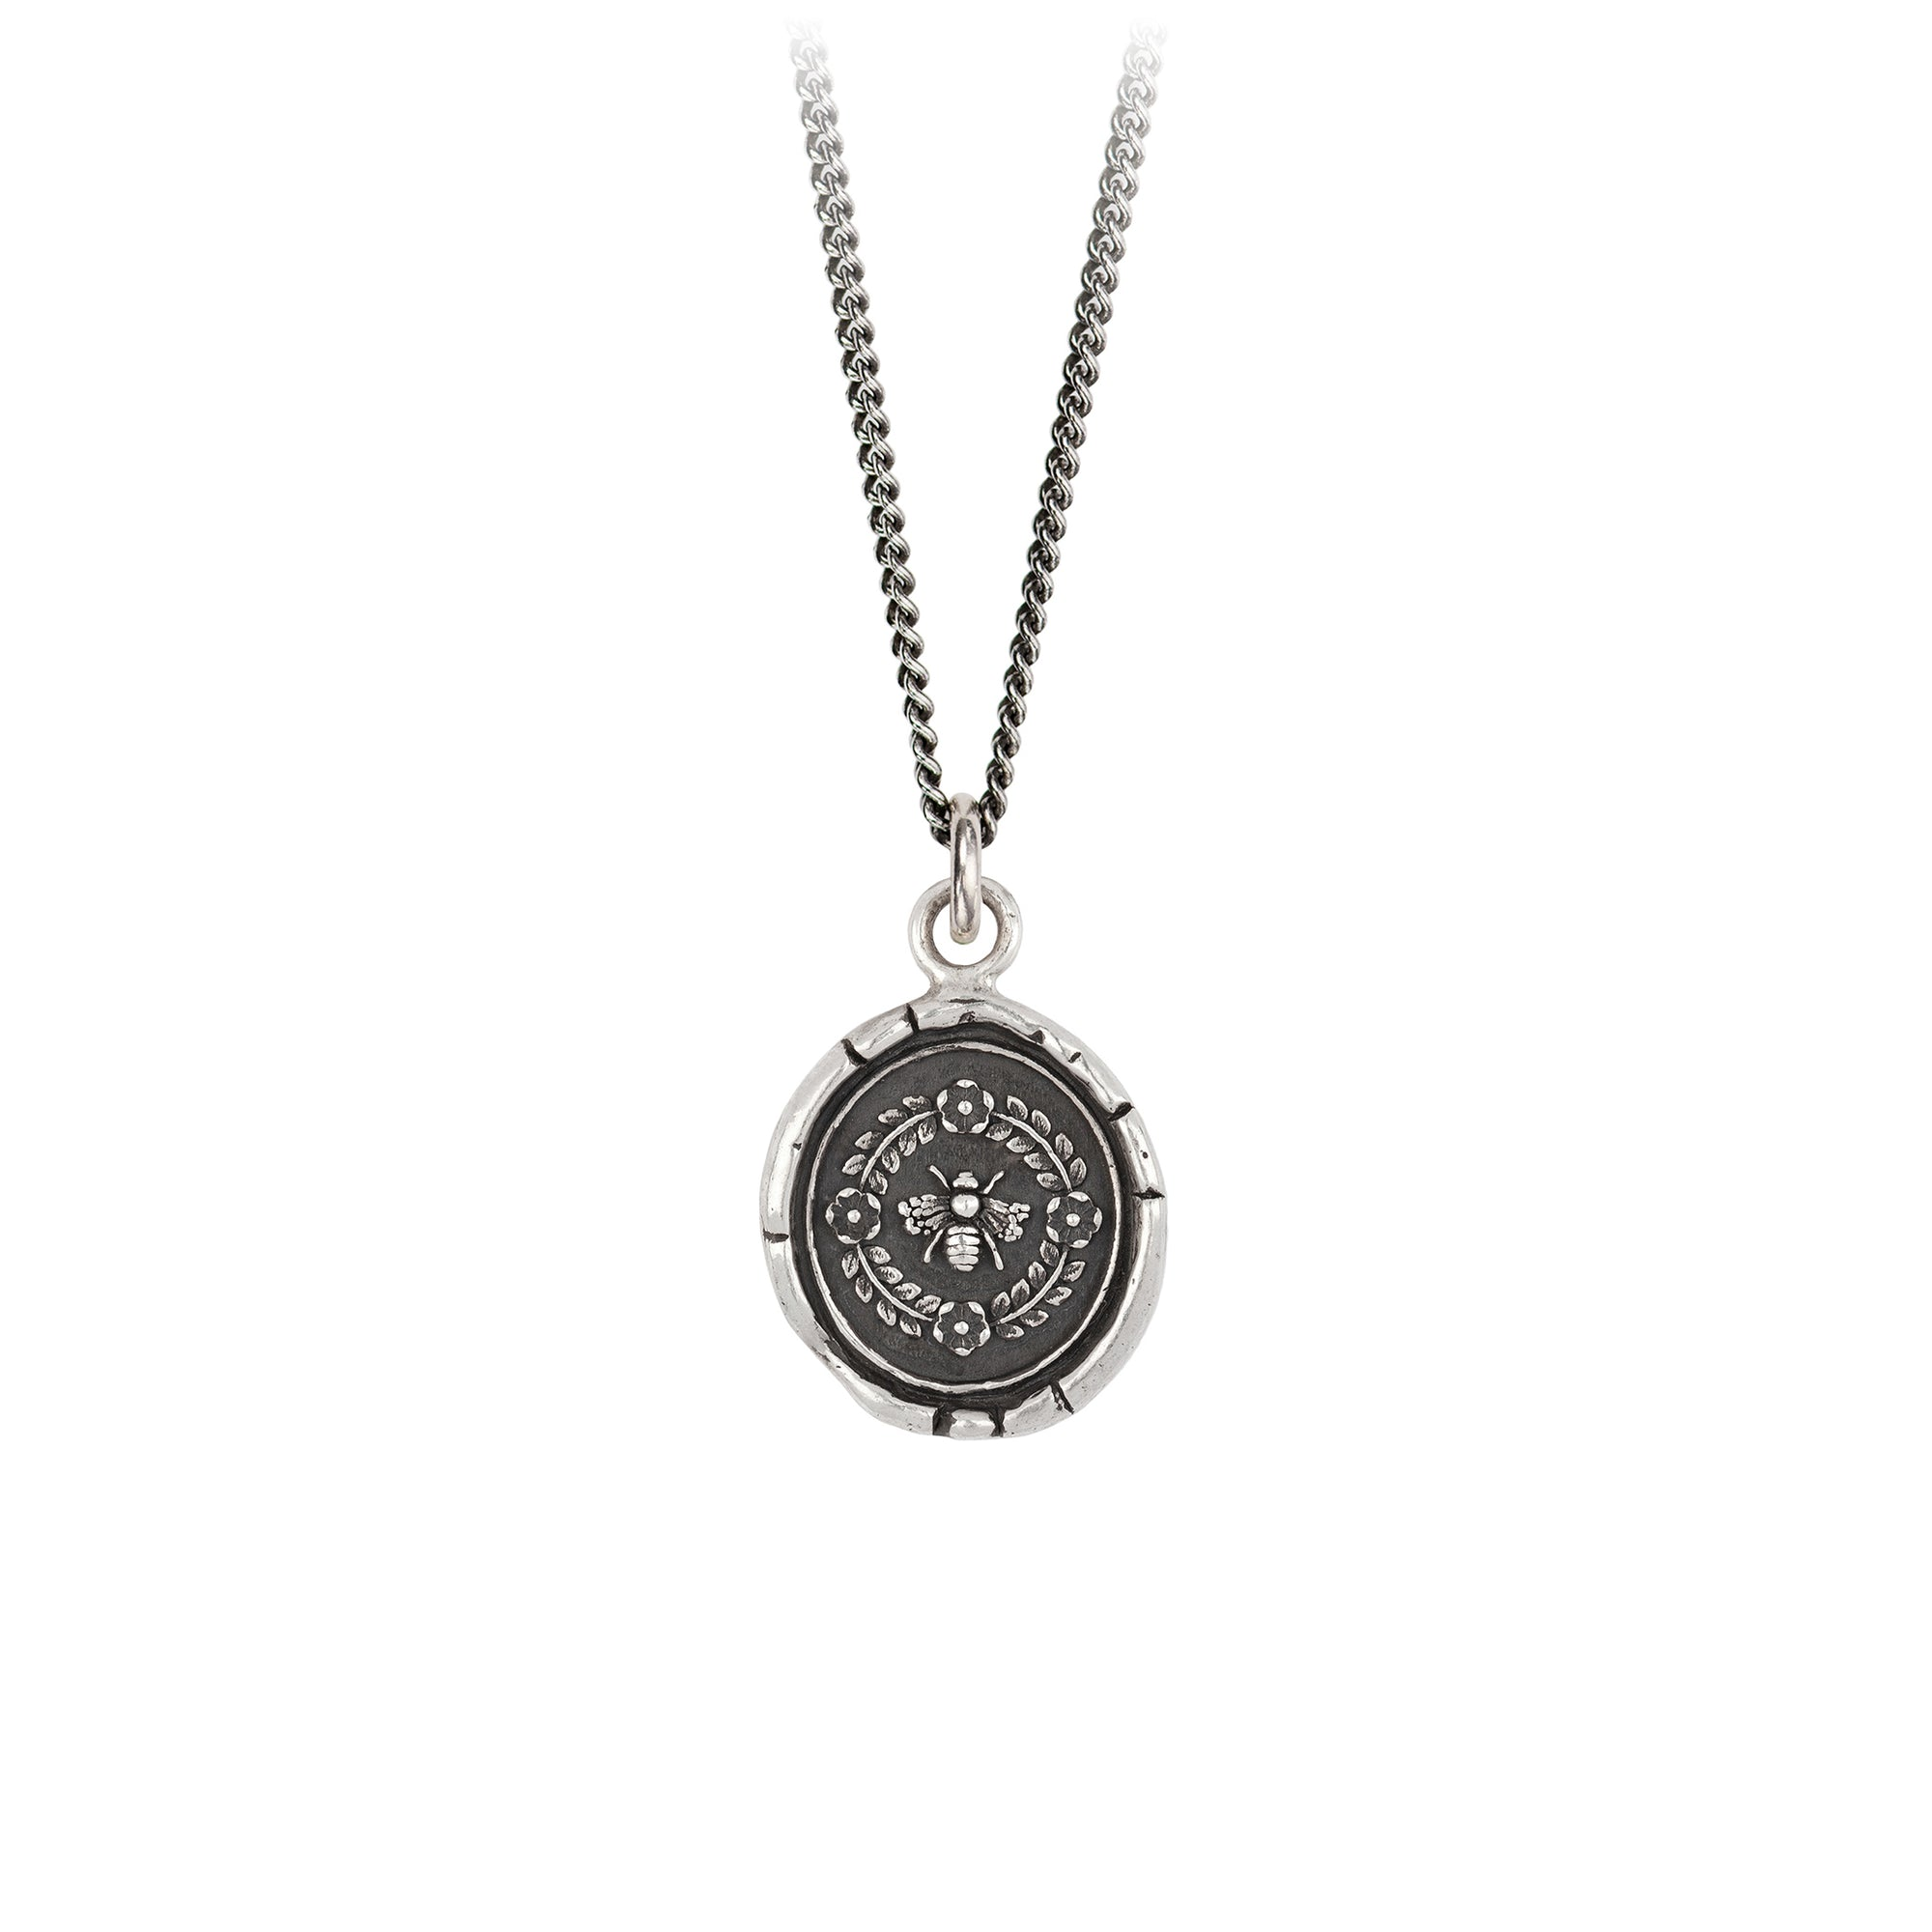 Pyrrha Honeybee Talisman Necklace Silver